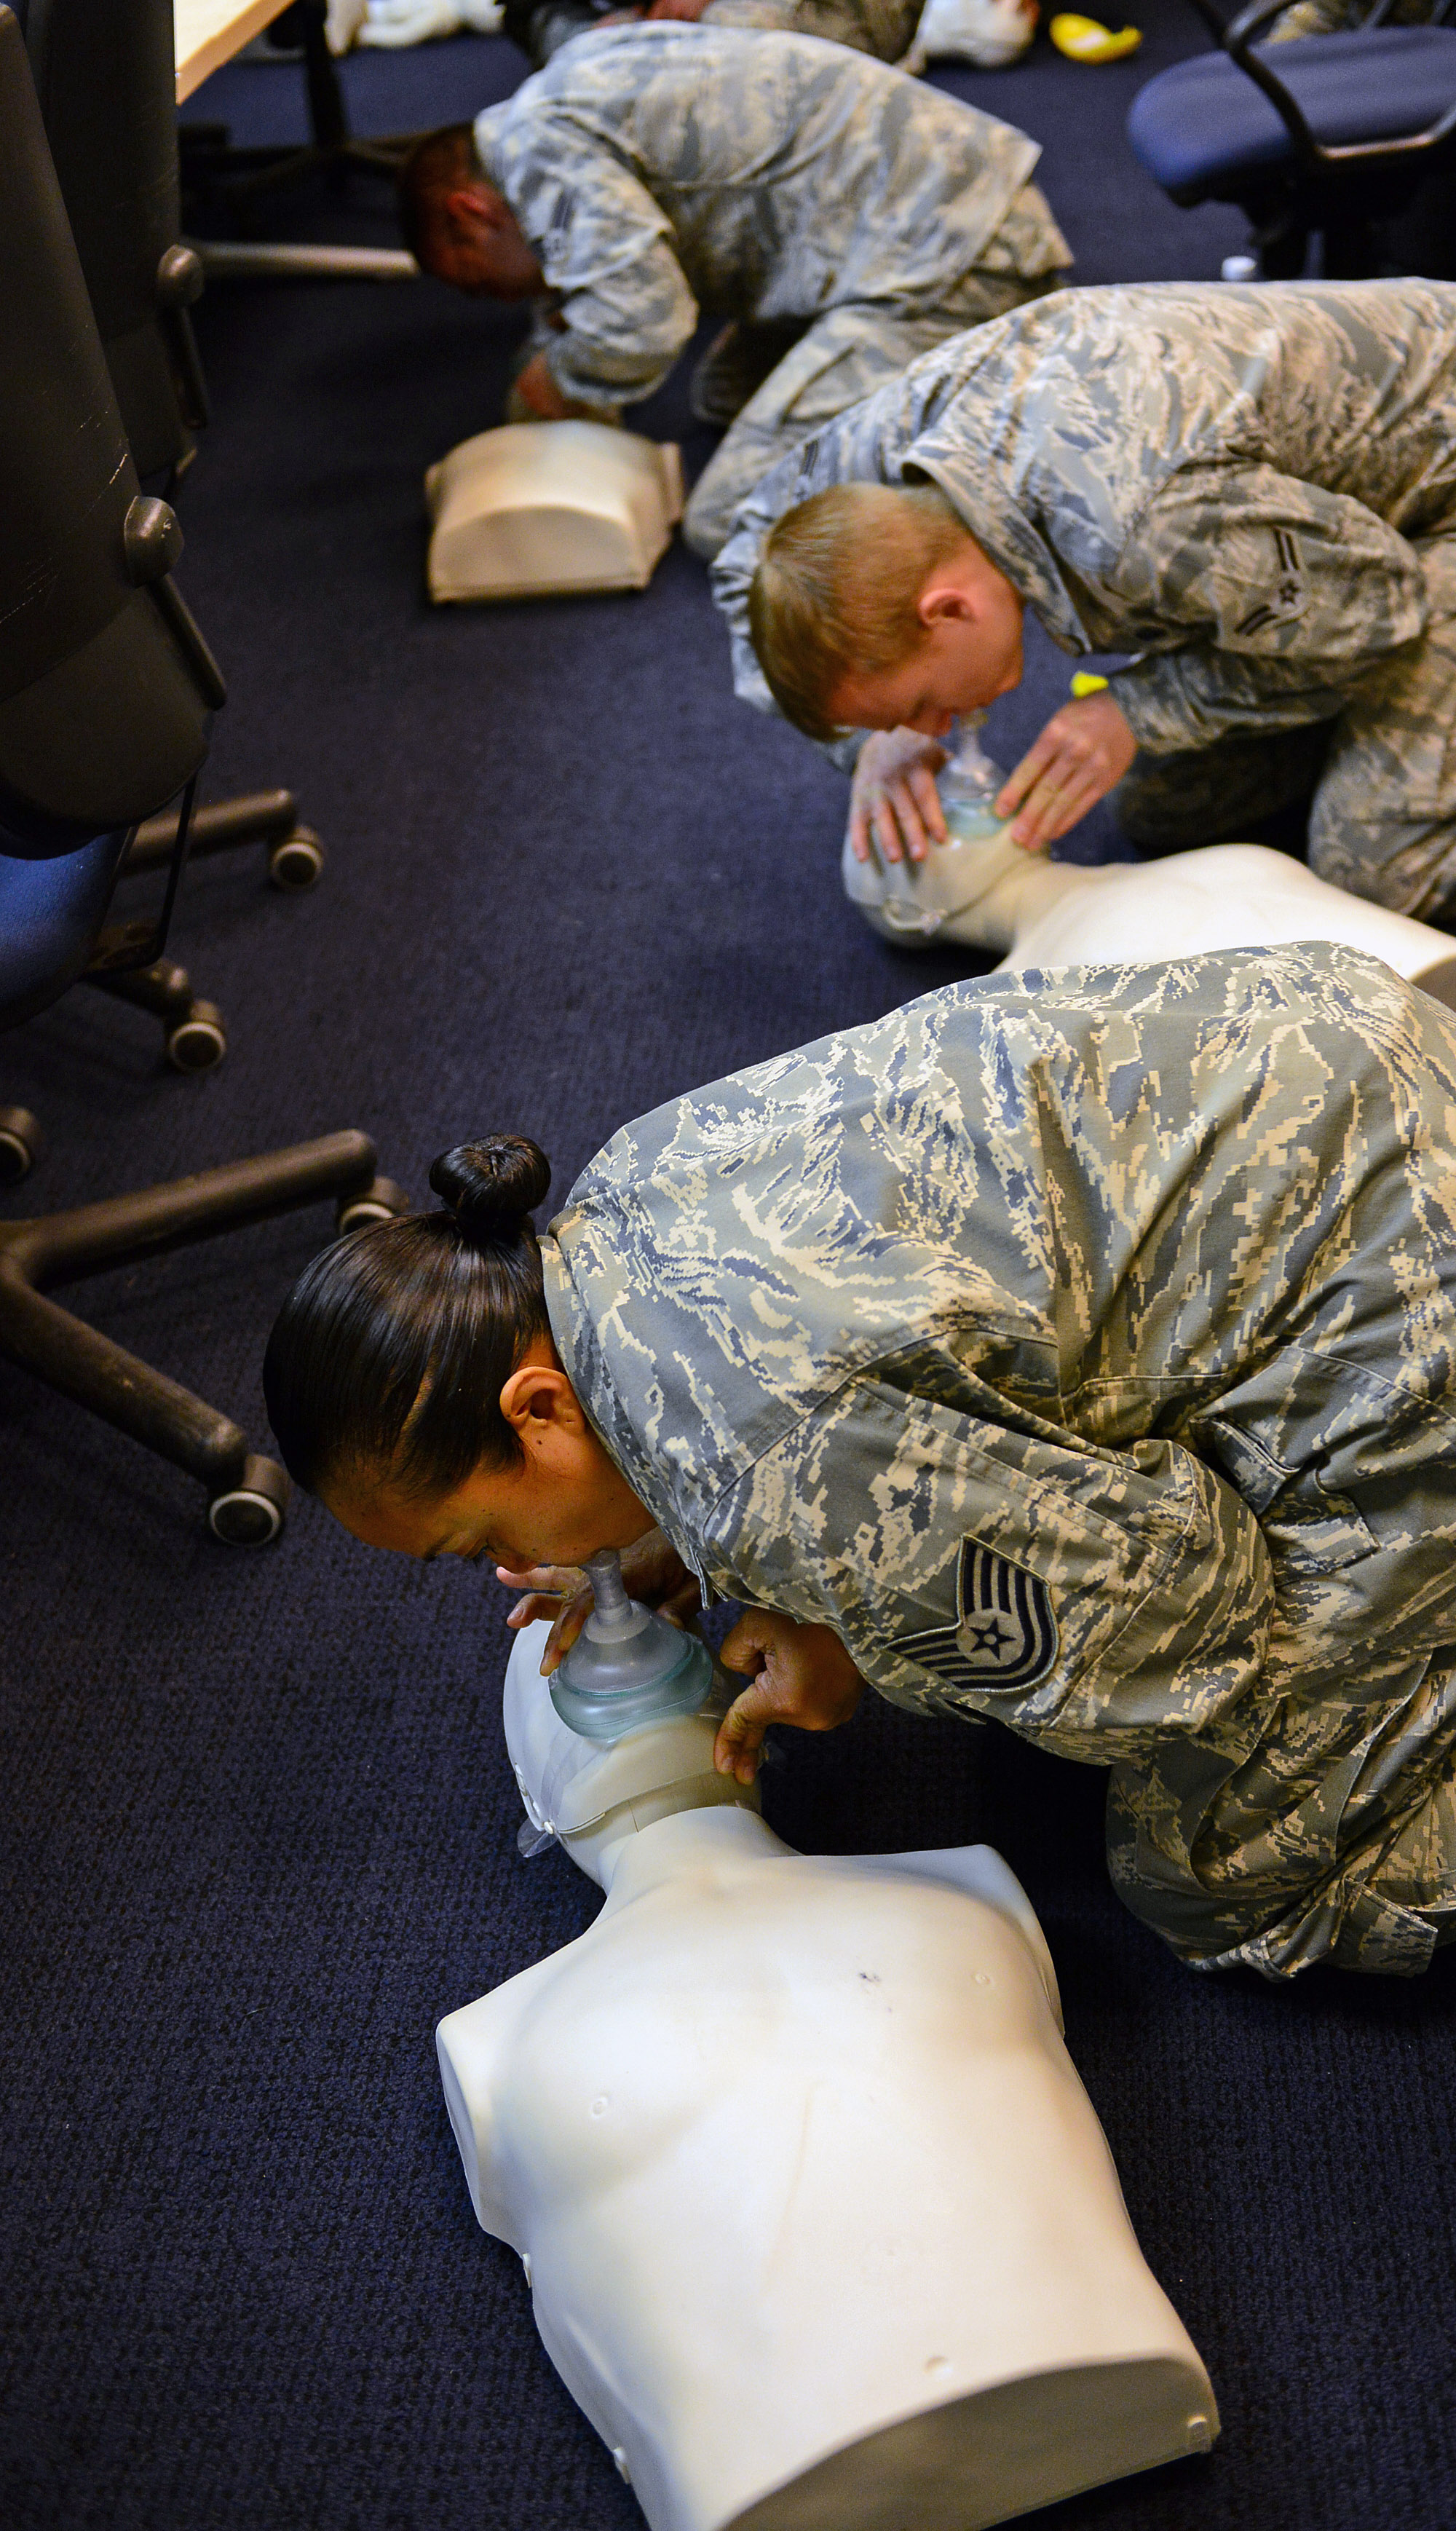 Free cpr classes available aviano air base article display free cpr classes available xflitez Choice Image